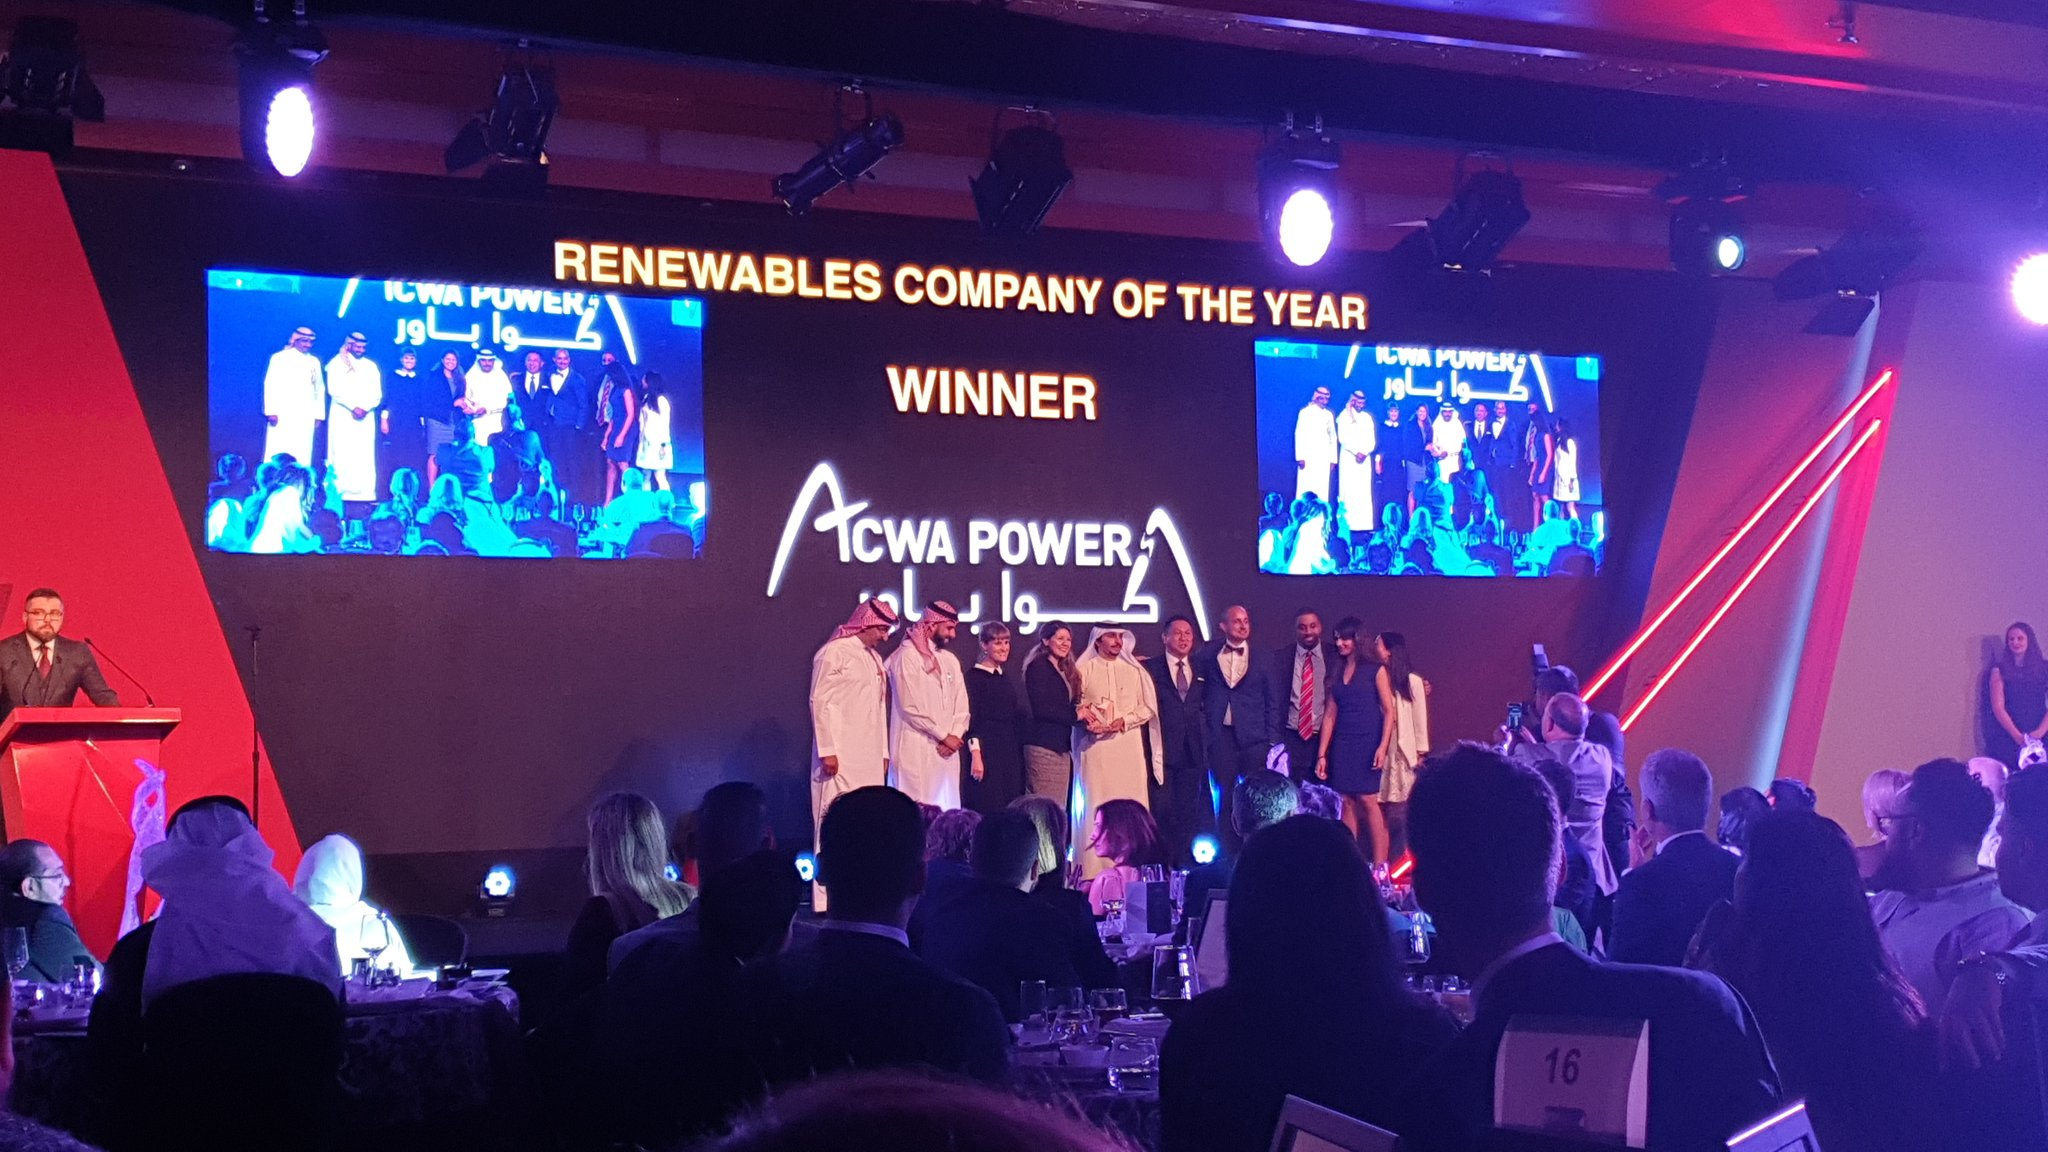 ACWA Power Wins Renewables Company of the Year 2018 at MEED Awards